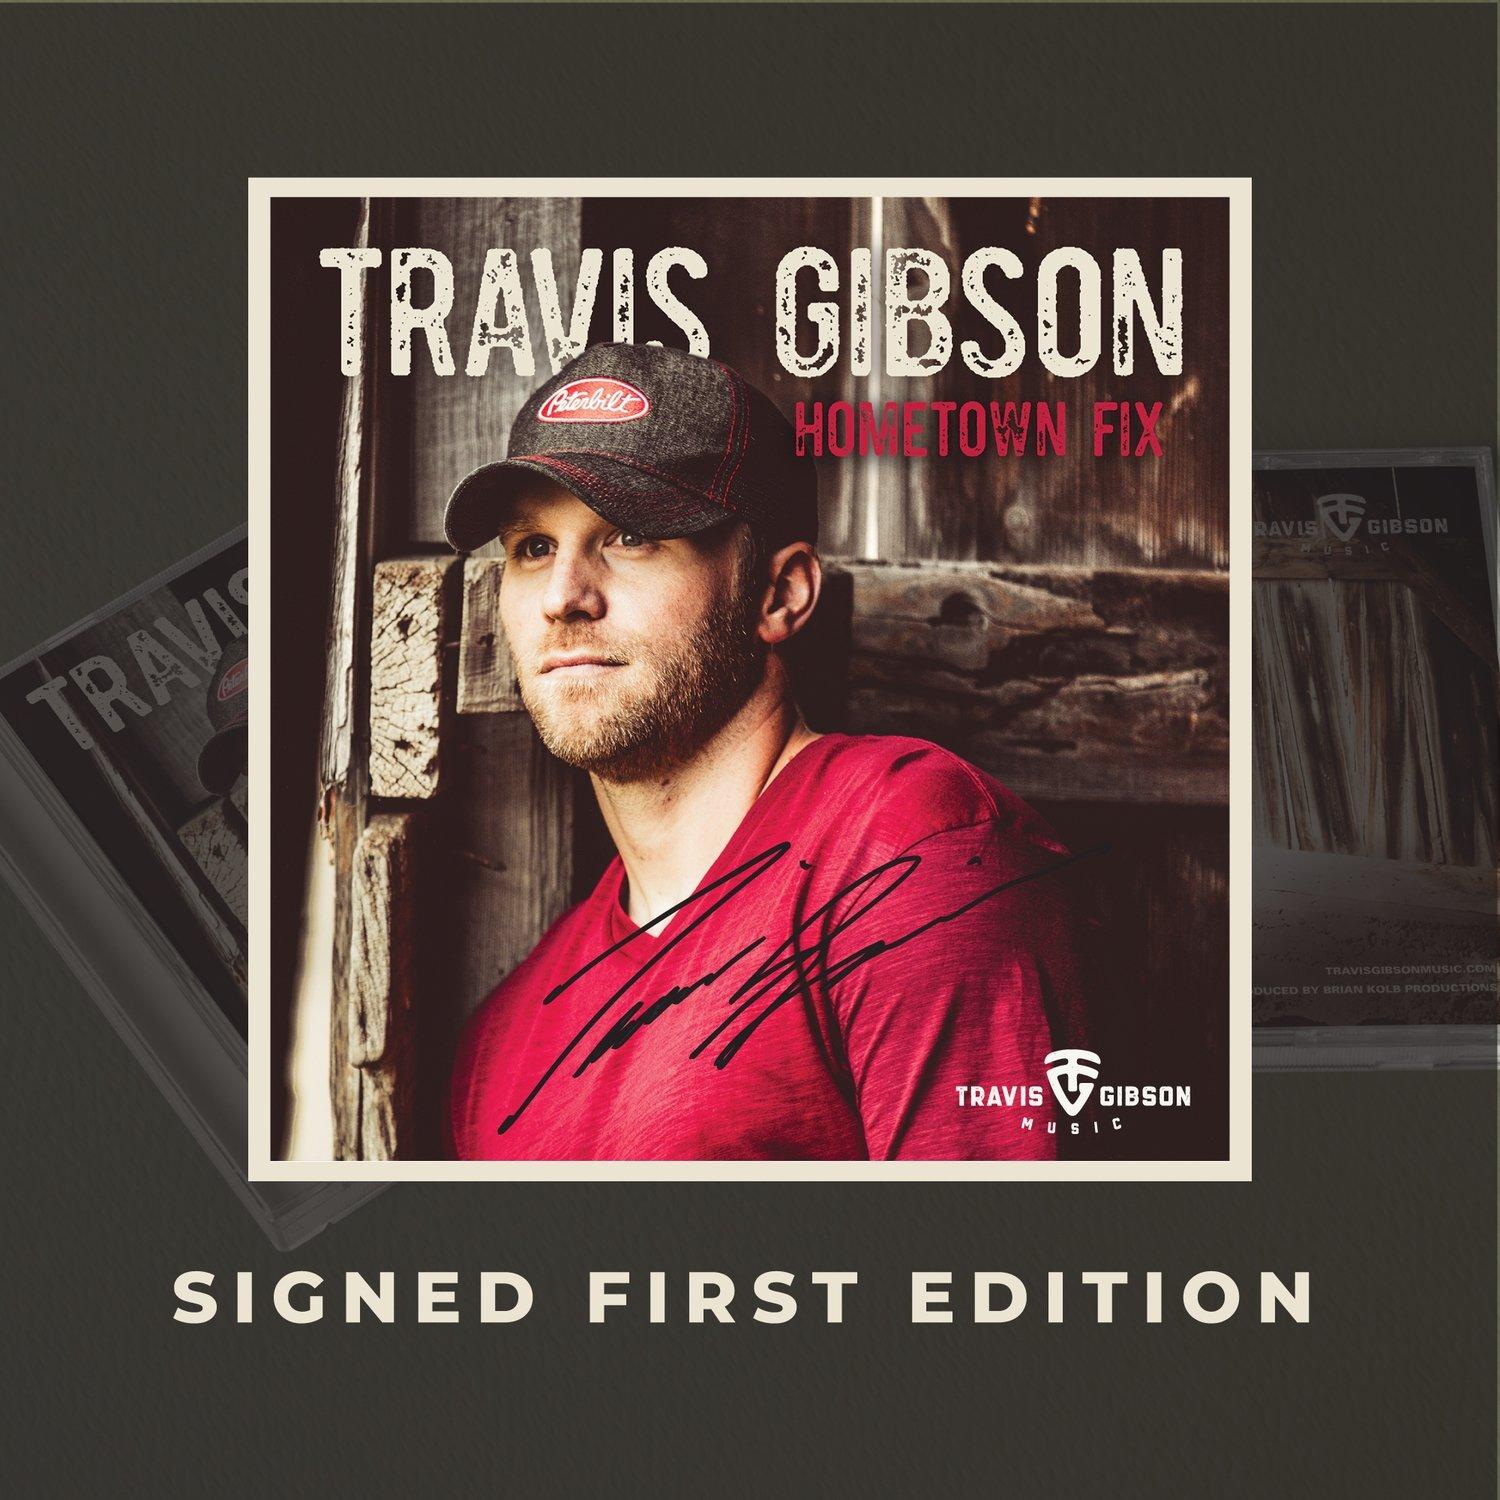 Signed 1st Edition EP